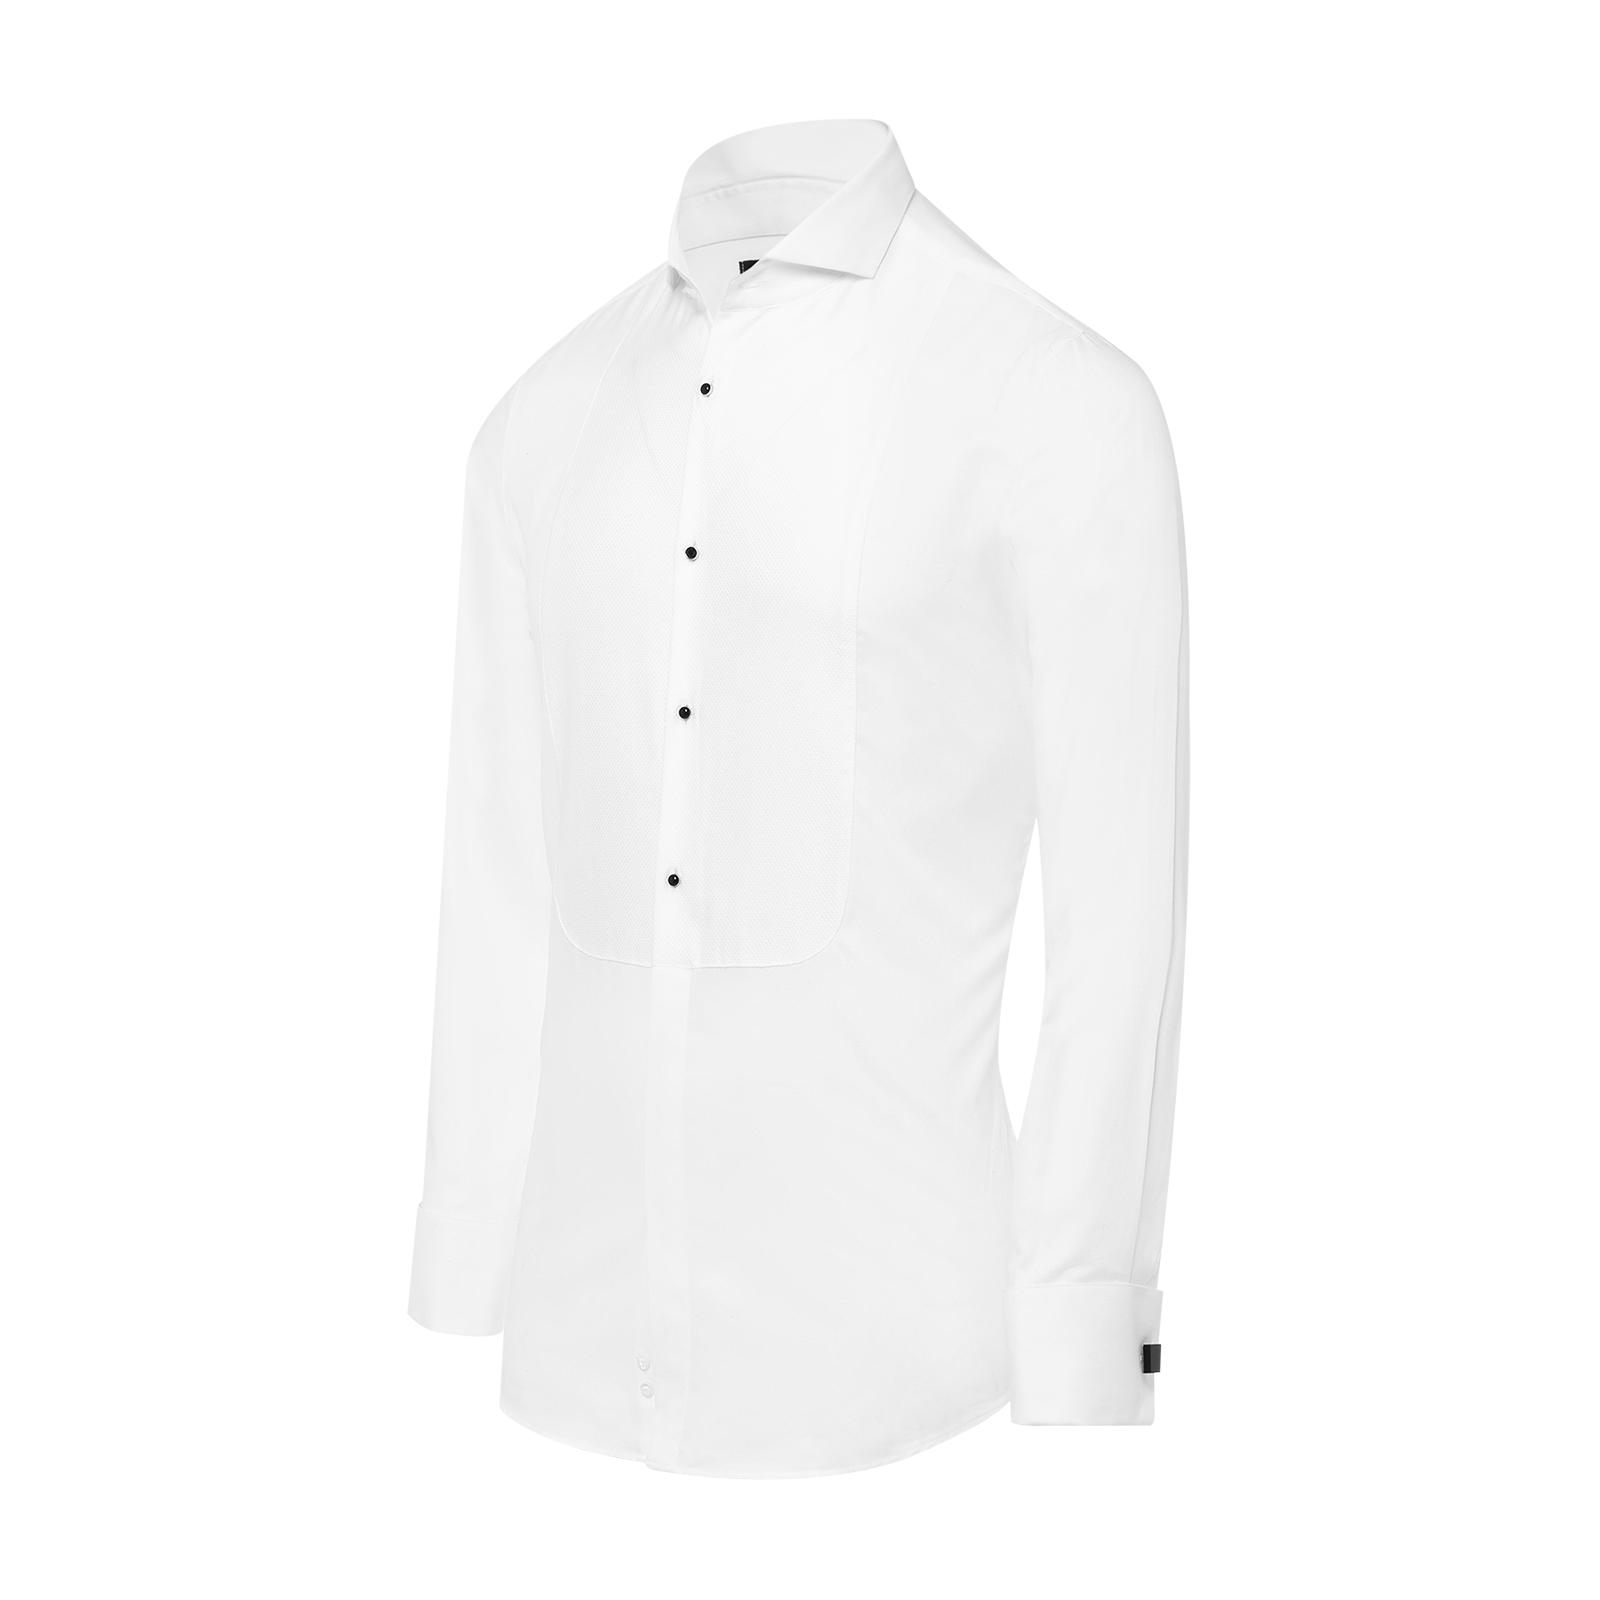 Ghost mannequin shirt product photo